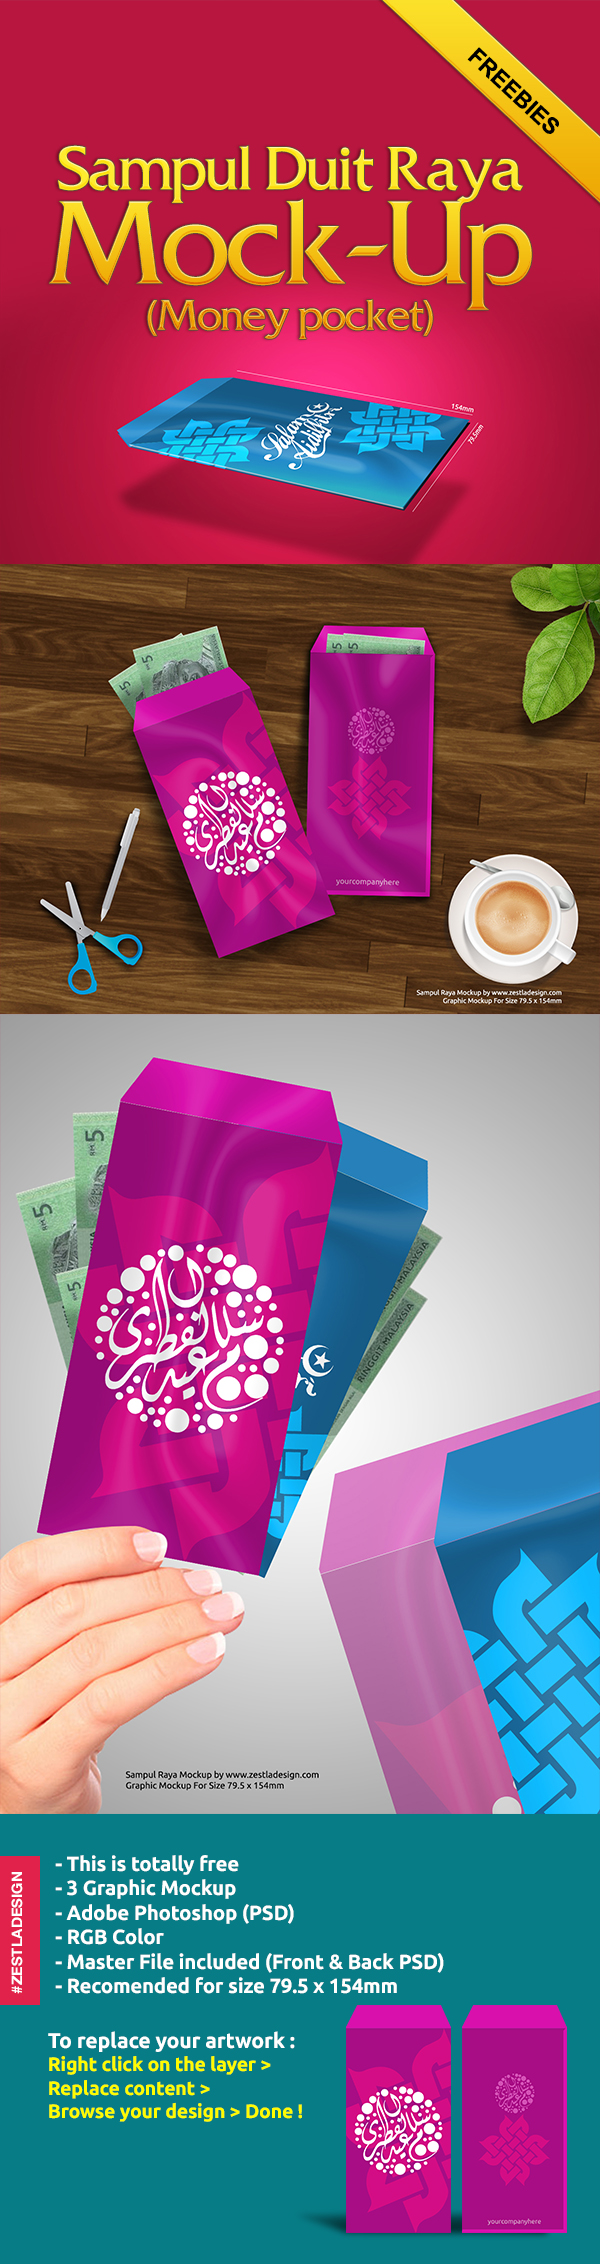 sampul-duit-raya-mockup-preview